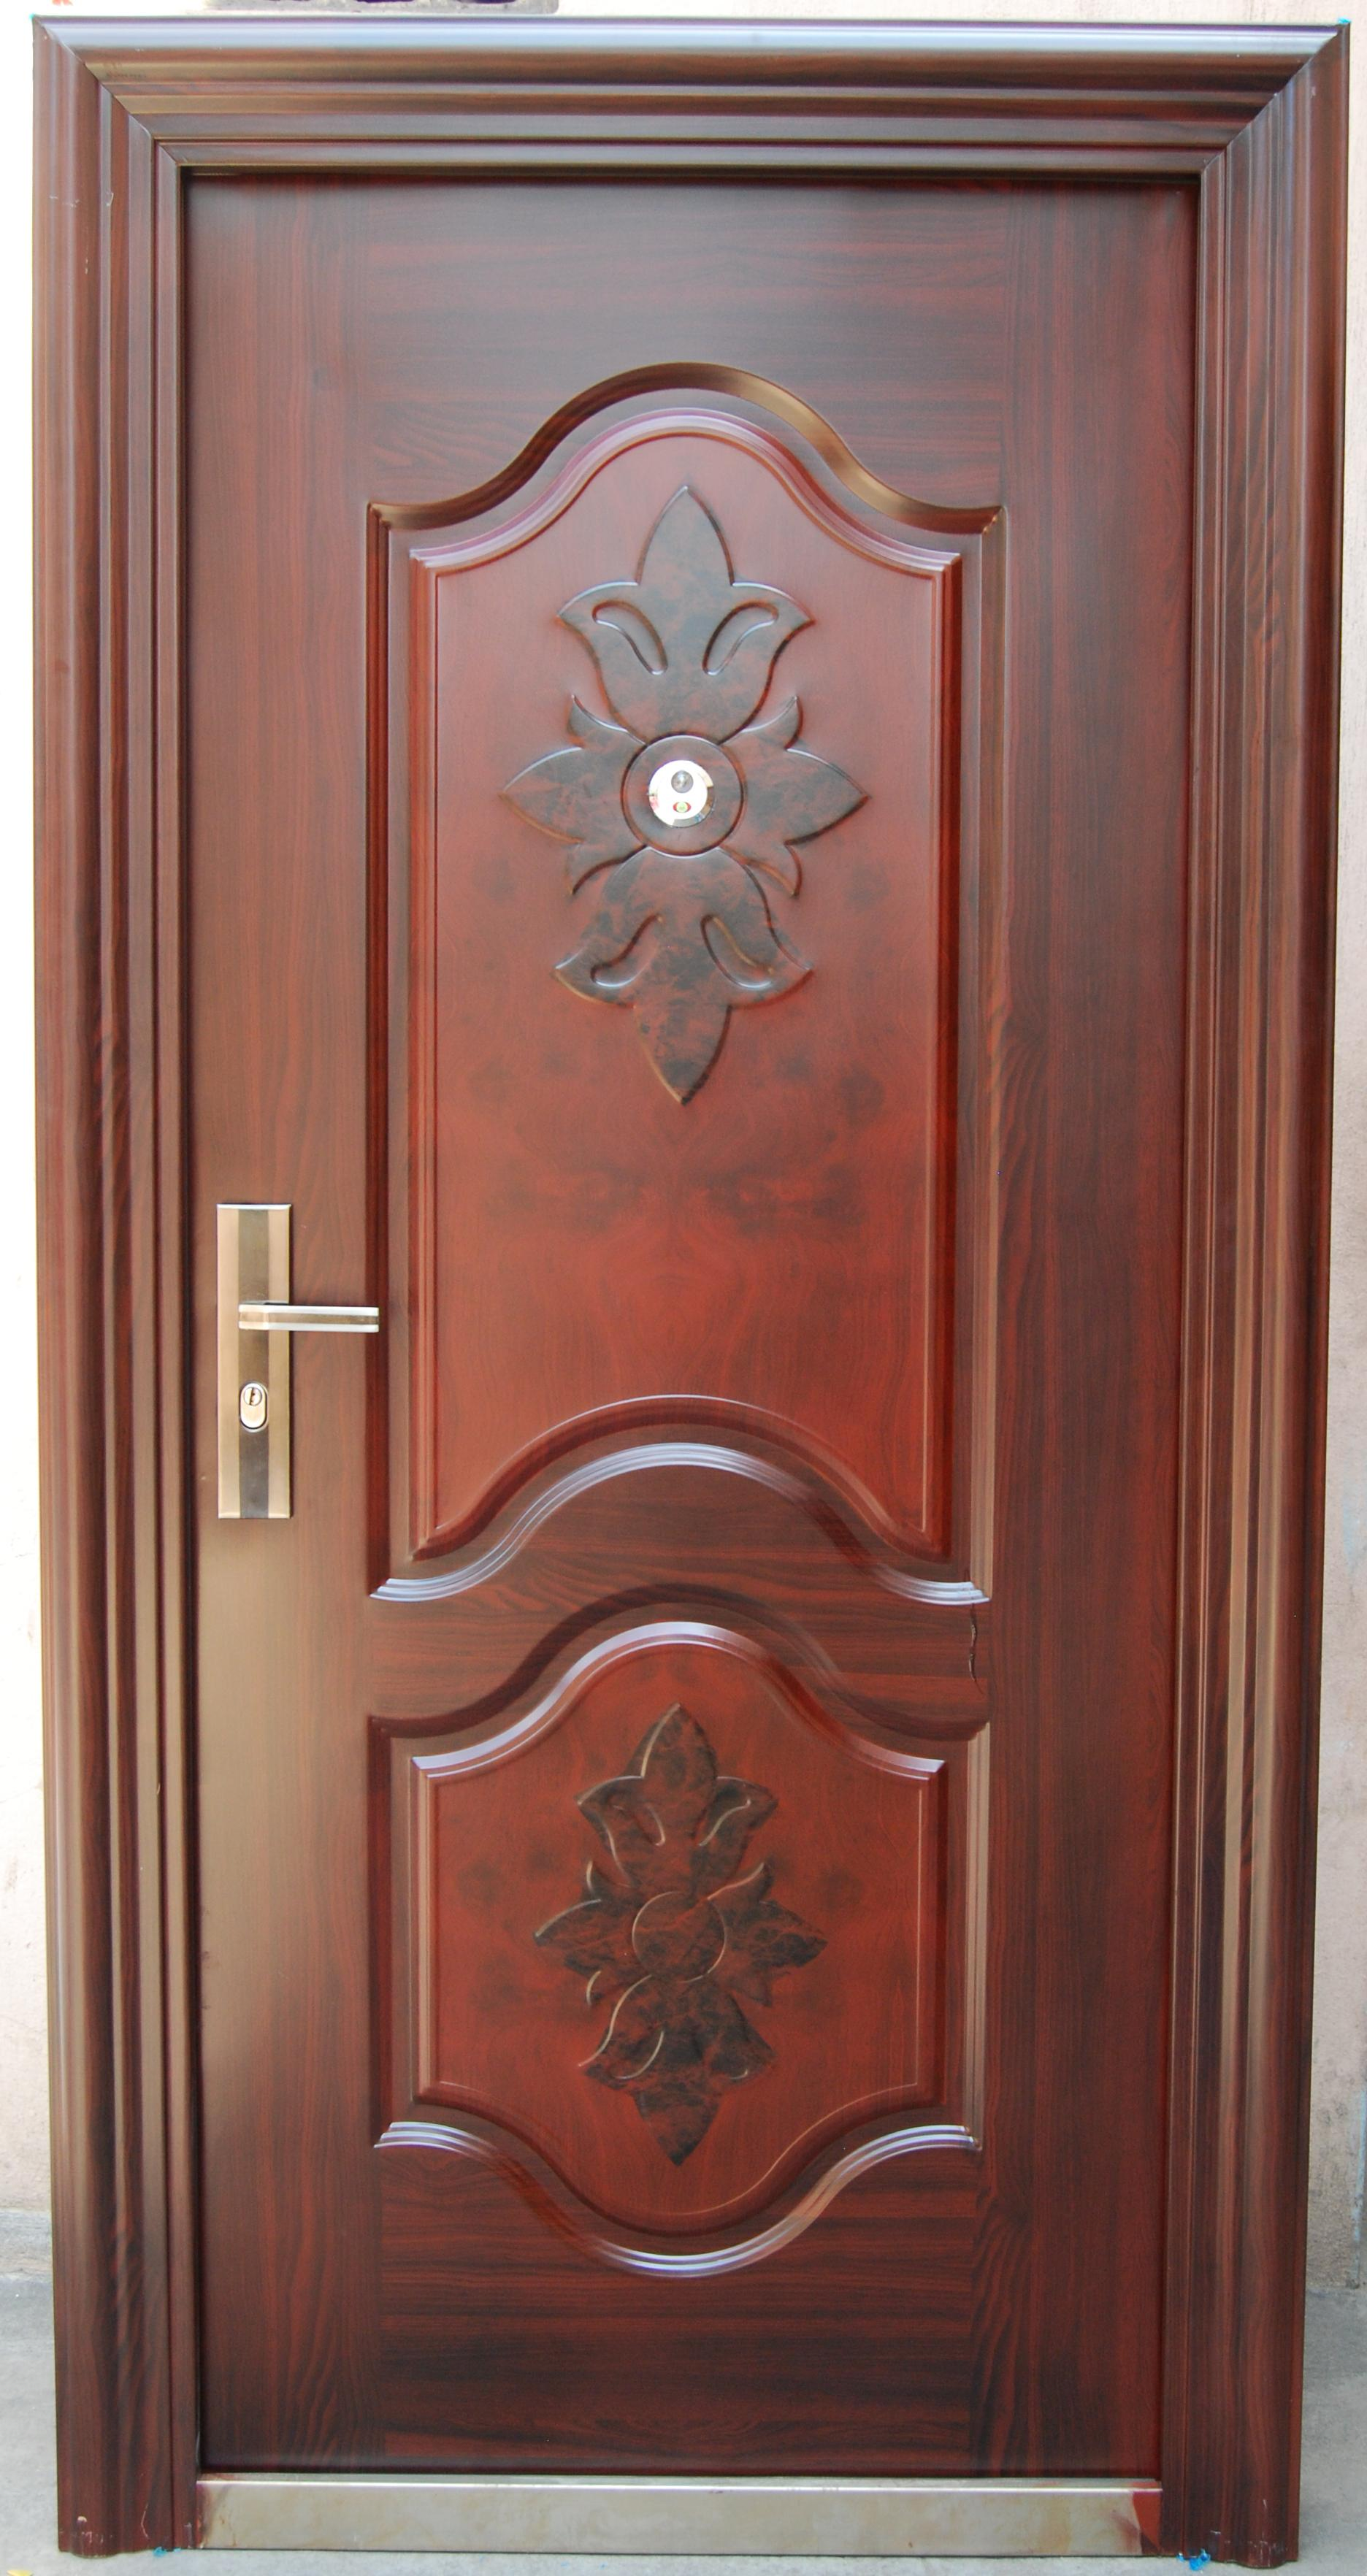 Steel security doors gharexpert for Latest wooden door designs 2016